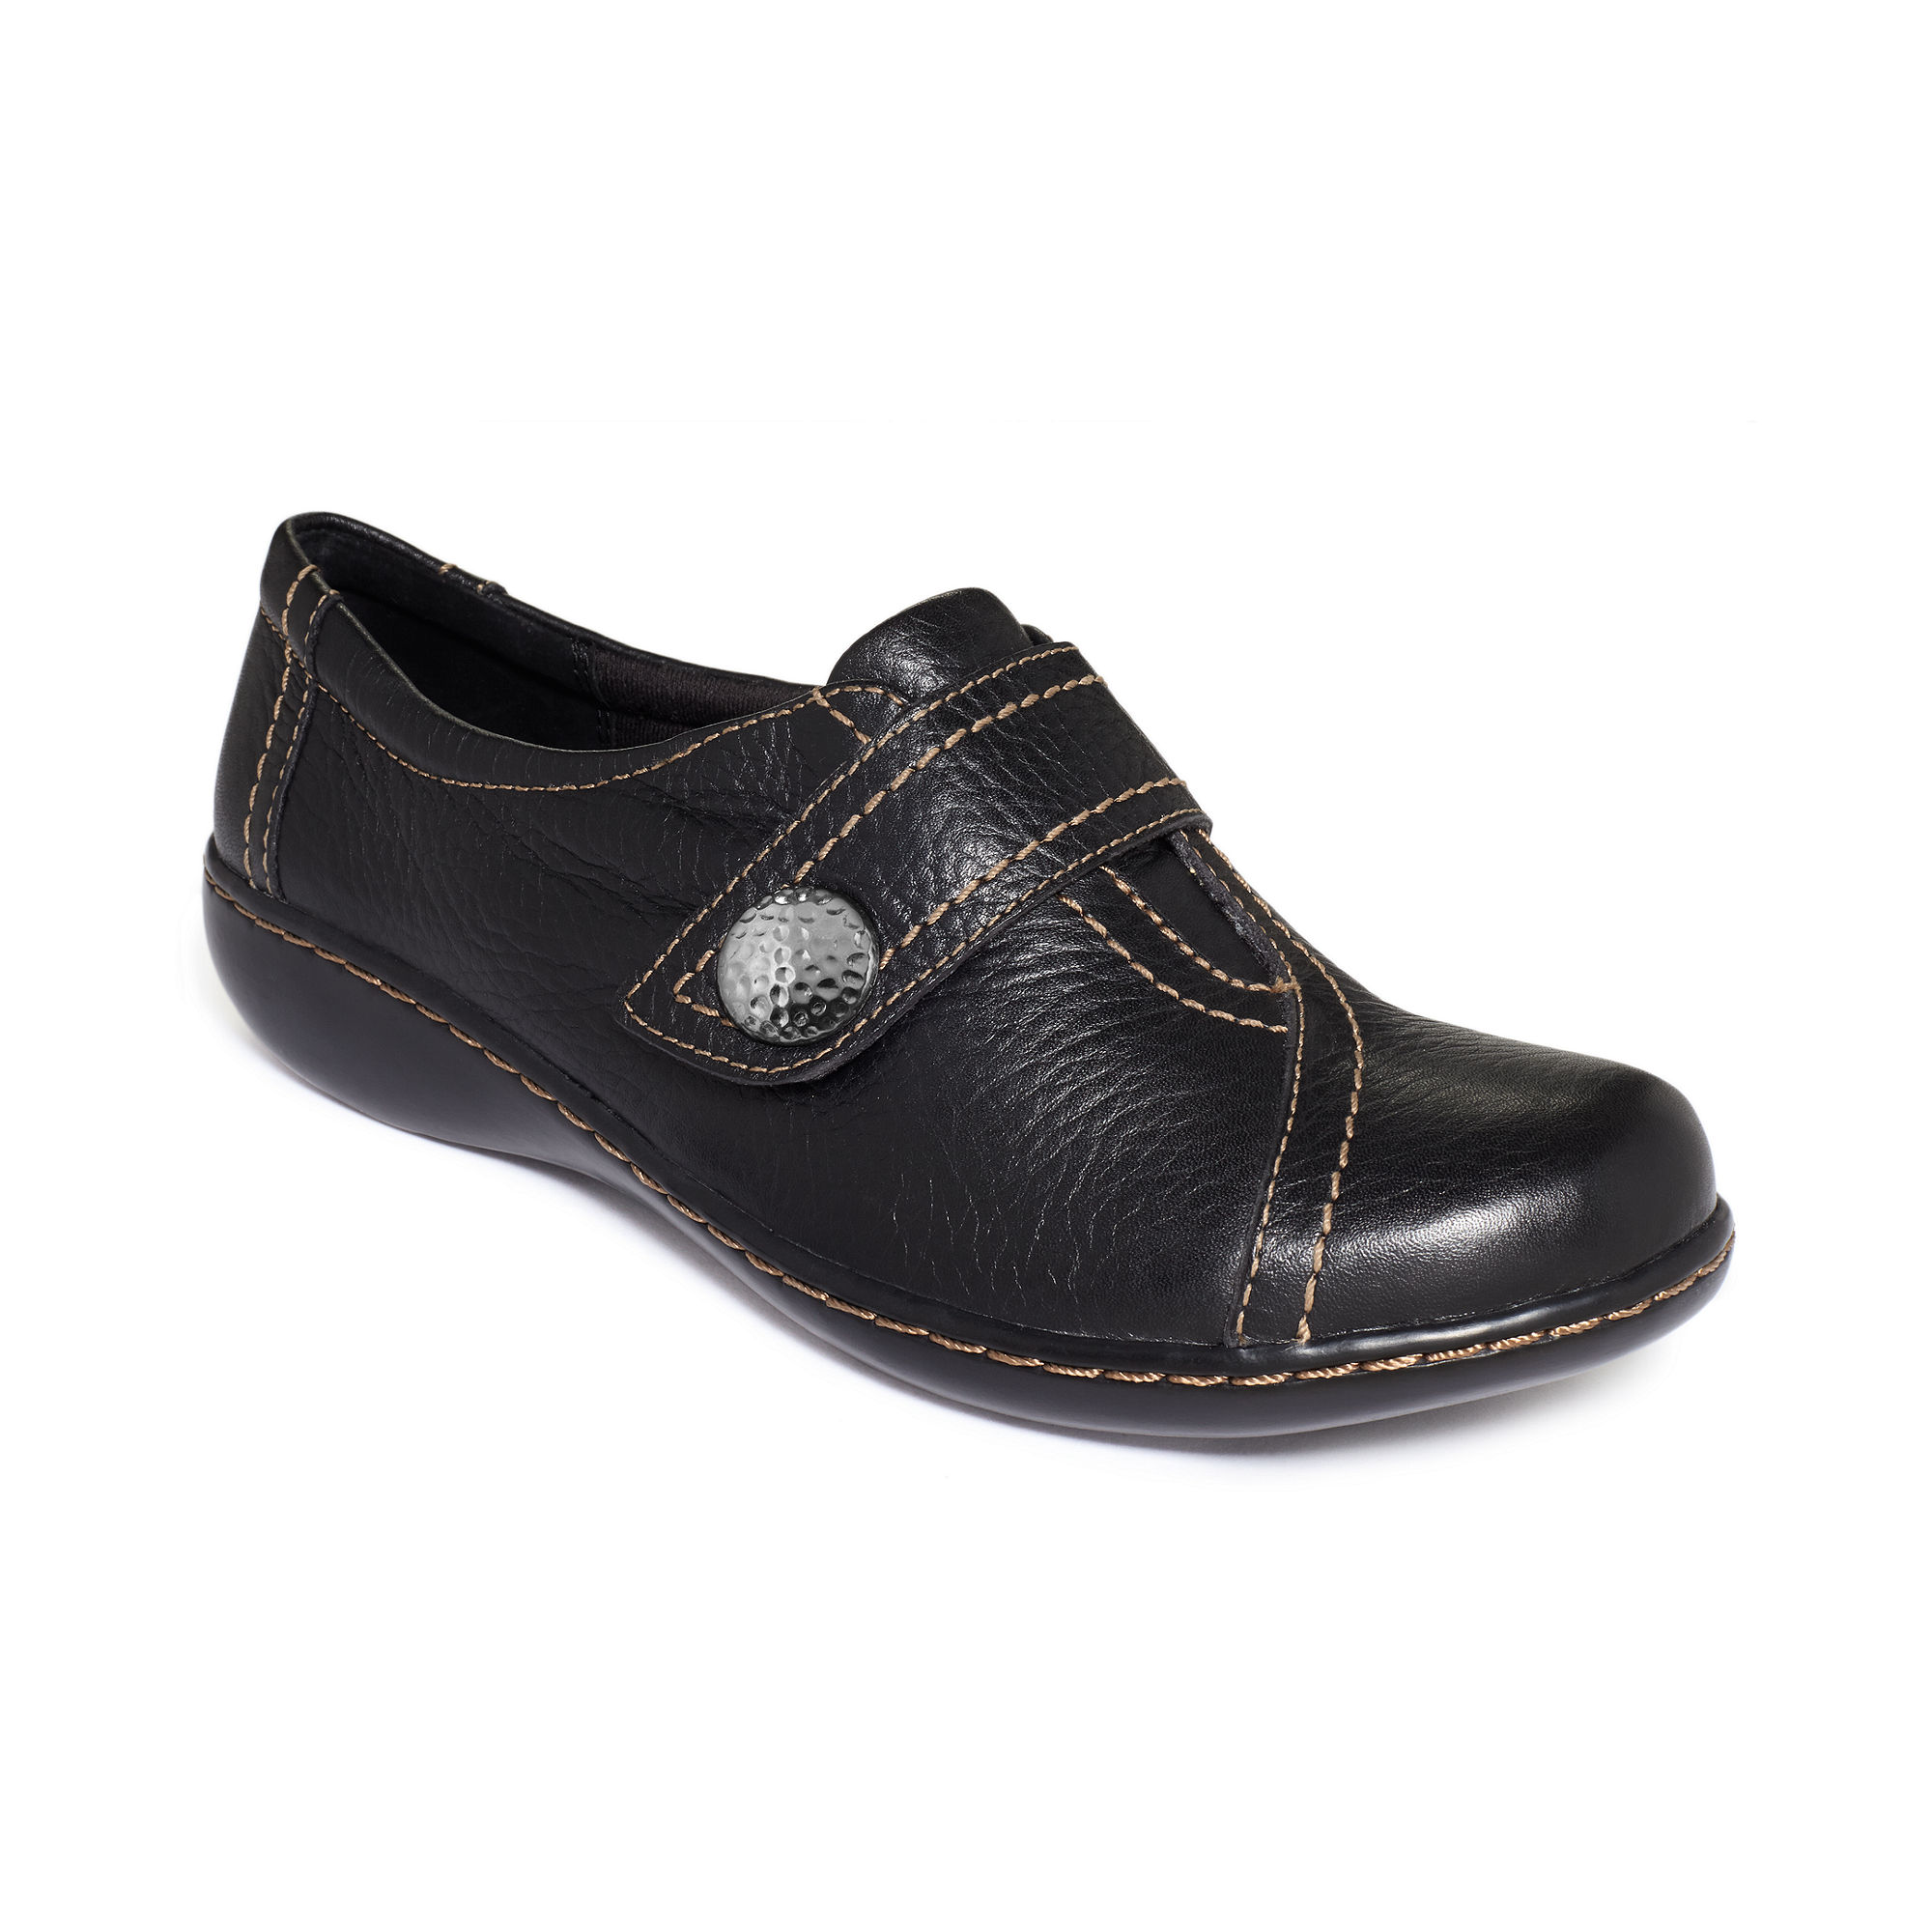 Clarks Shoes Womens Flats